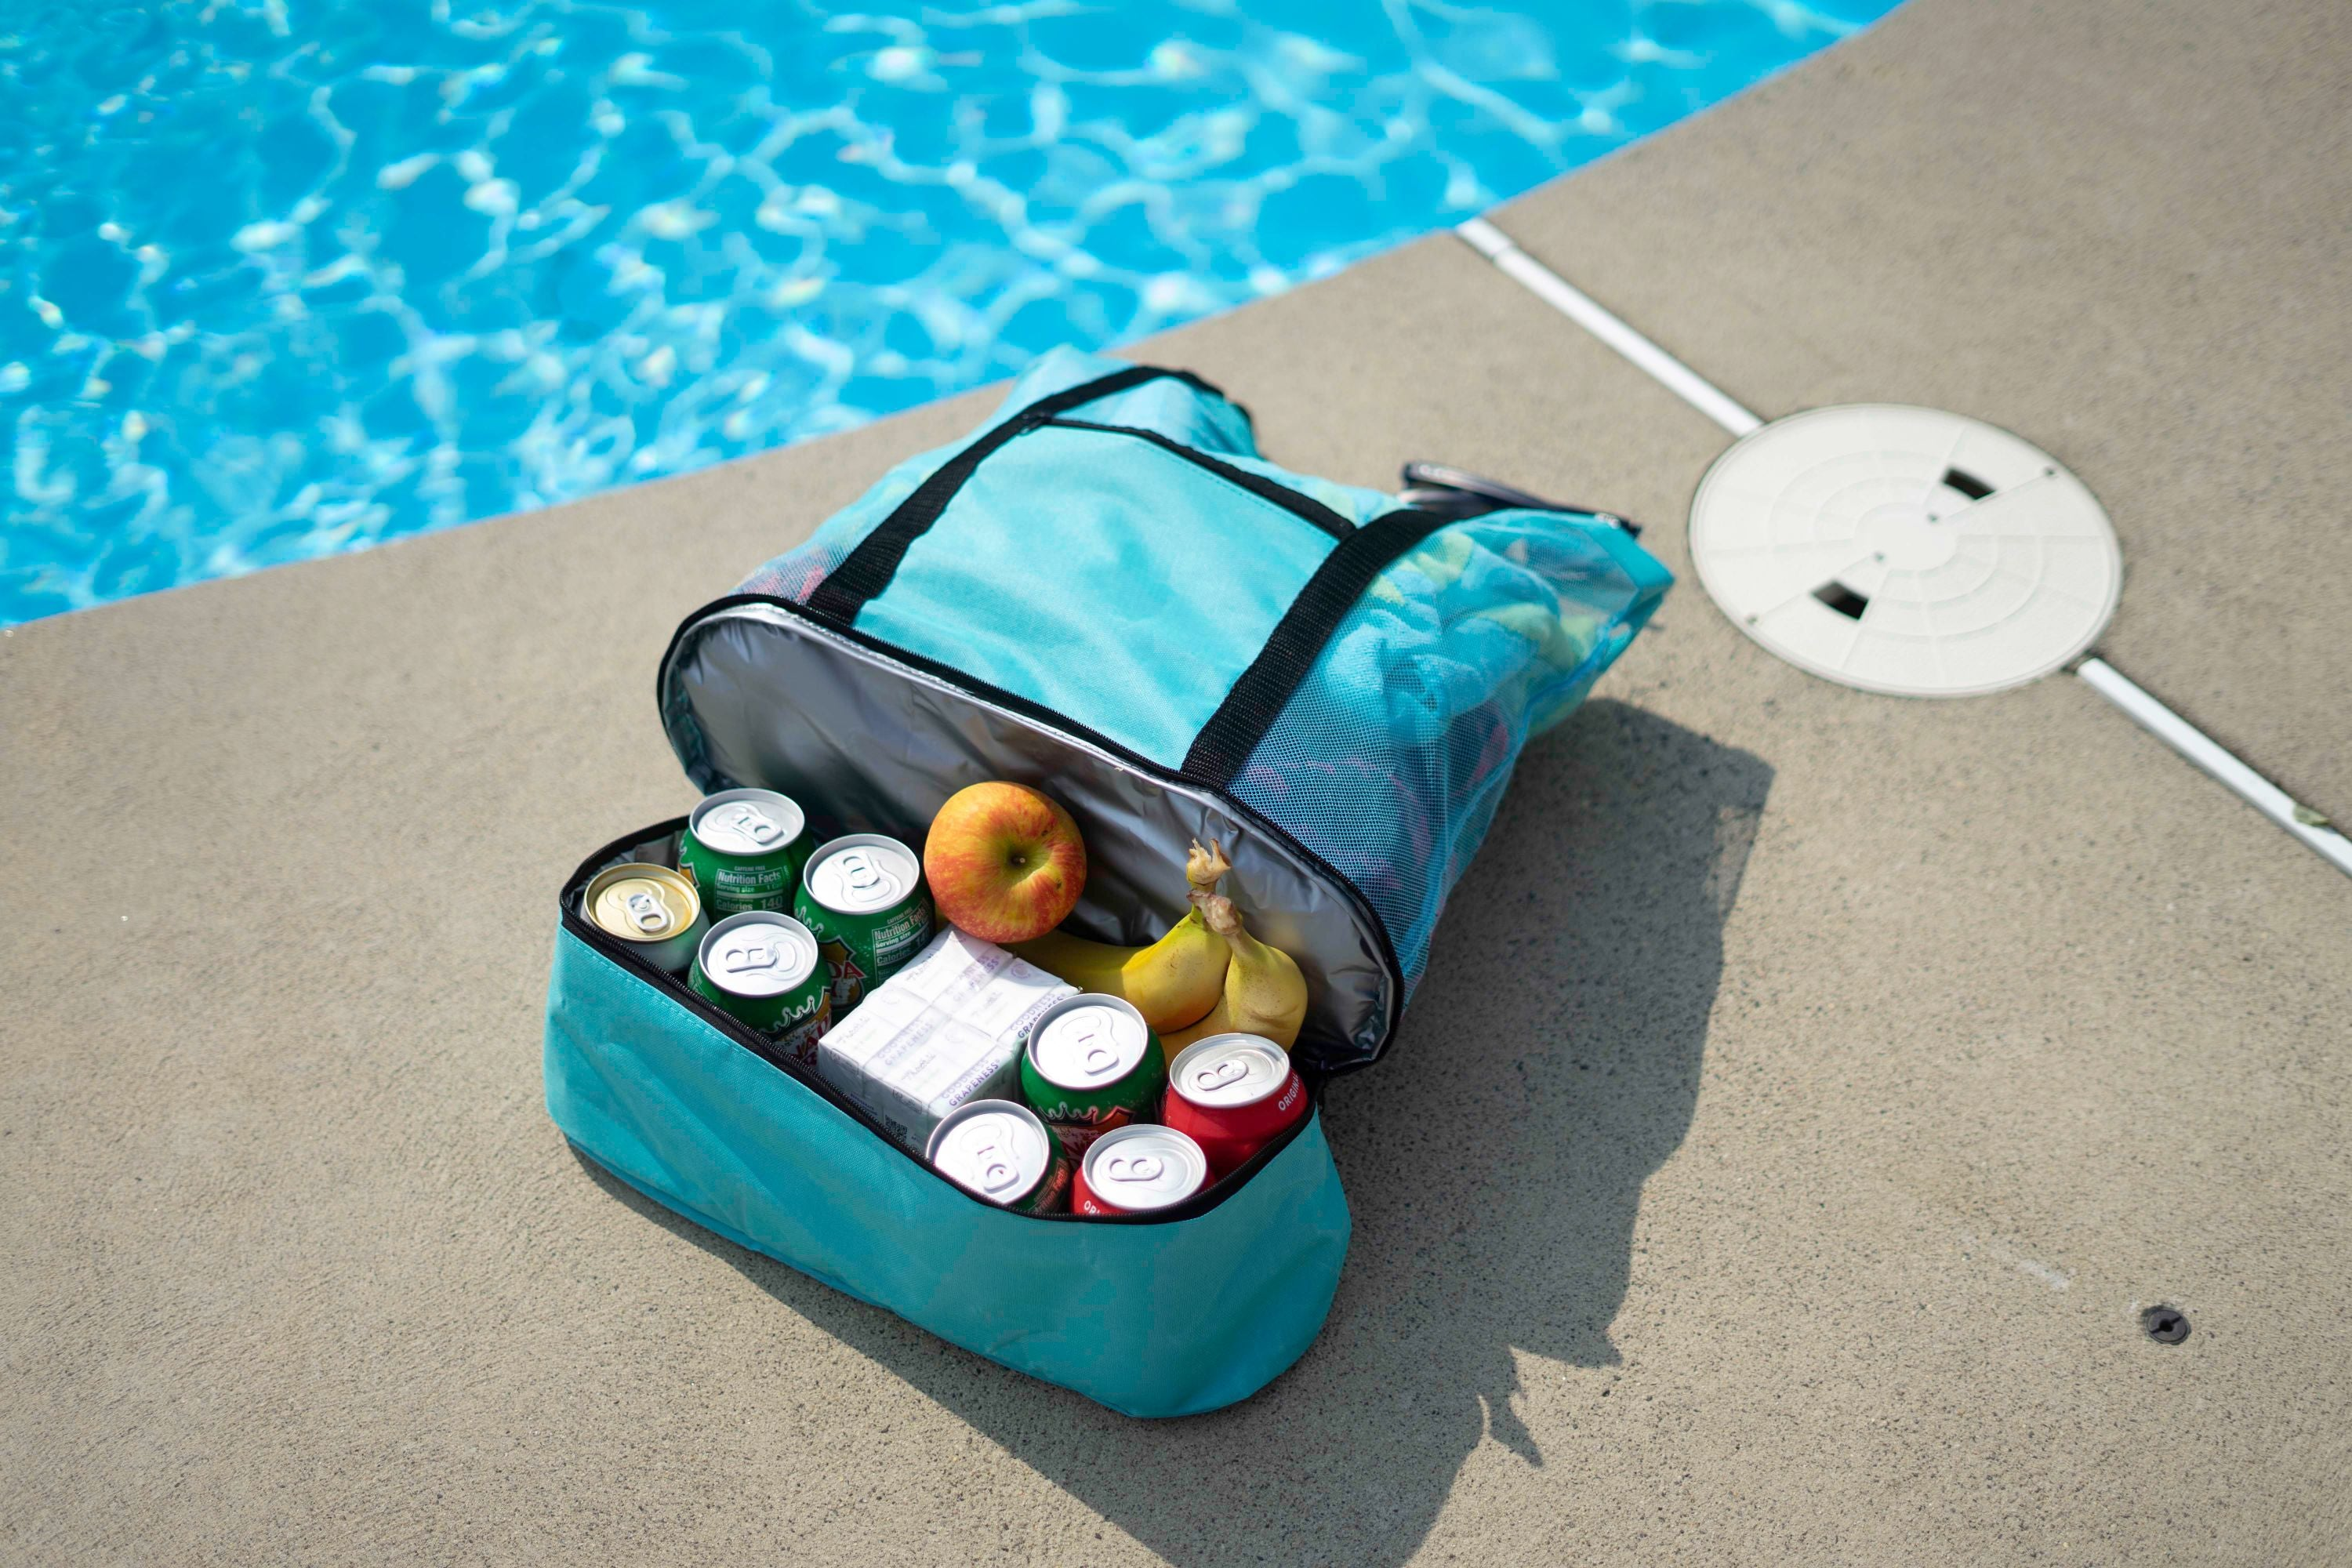 shopify-Insulated Cooler Picnic Beach Tote Bag-3